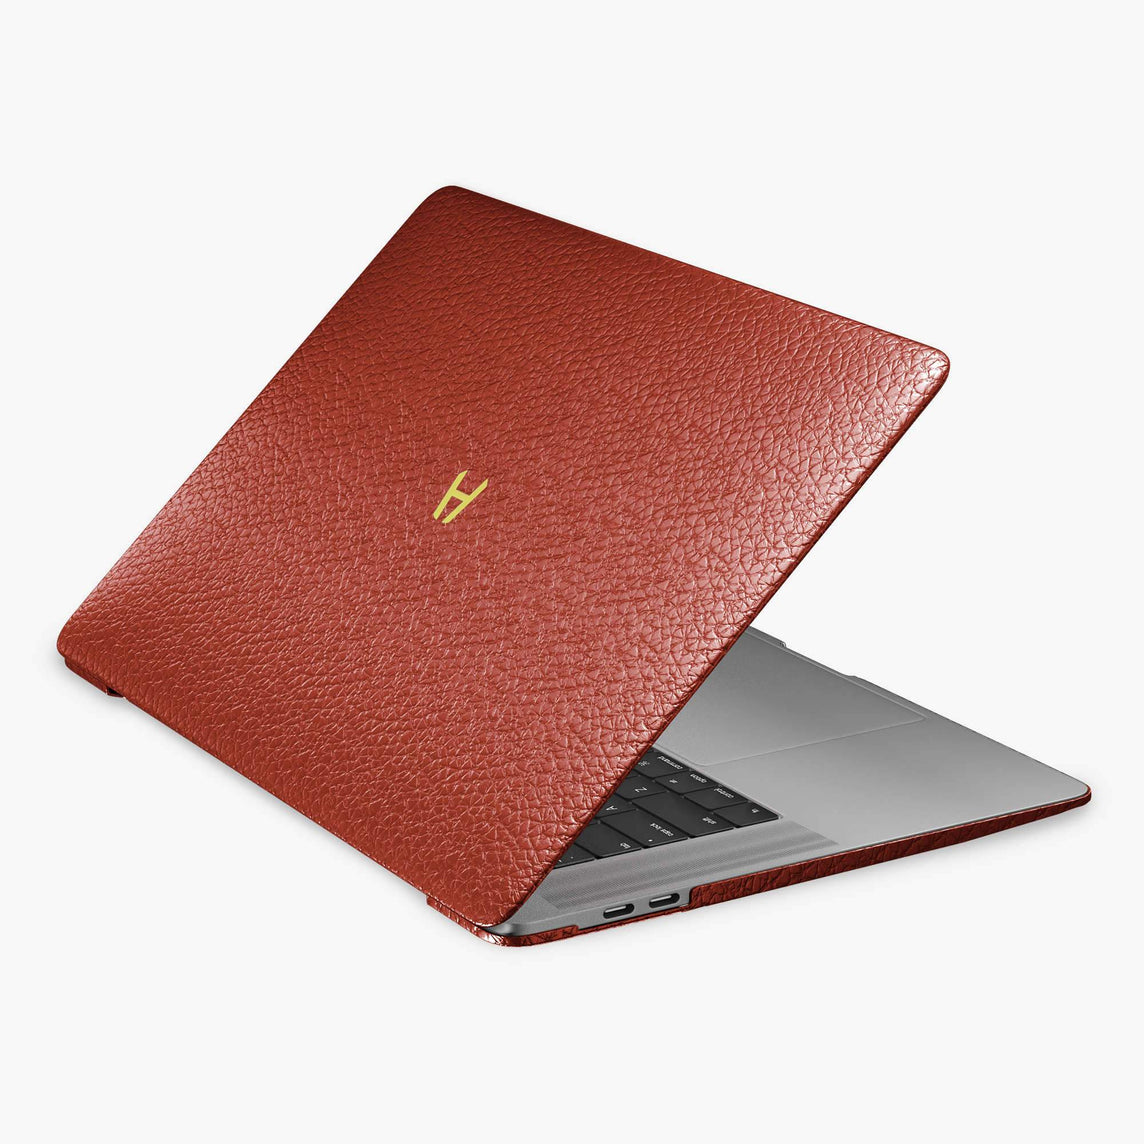 Calfskin Macbook Case Apple Mac Book Air | Red - Yellow Gold